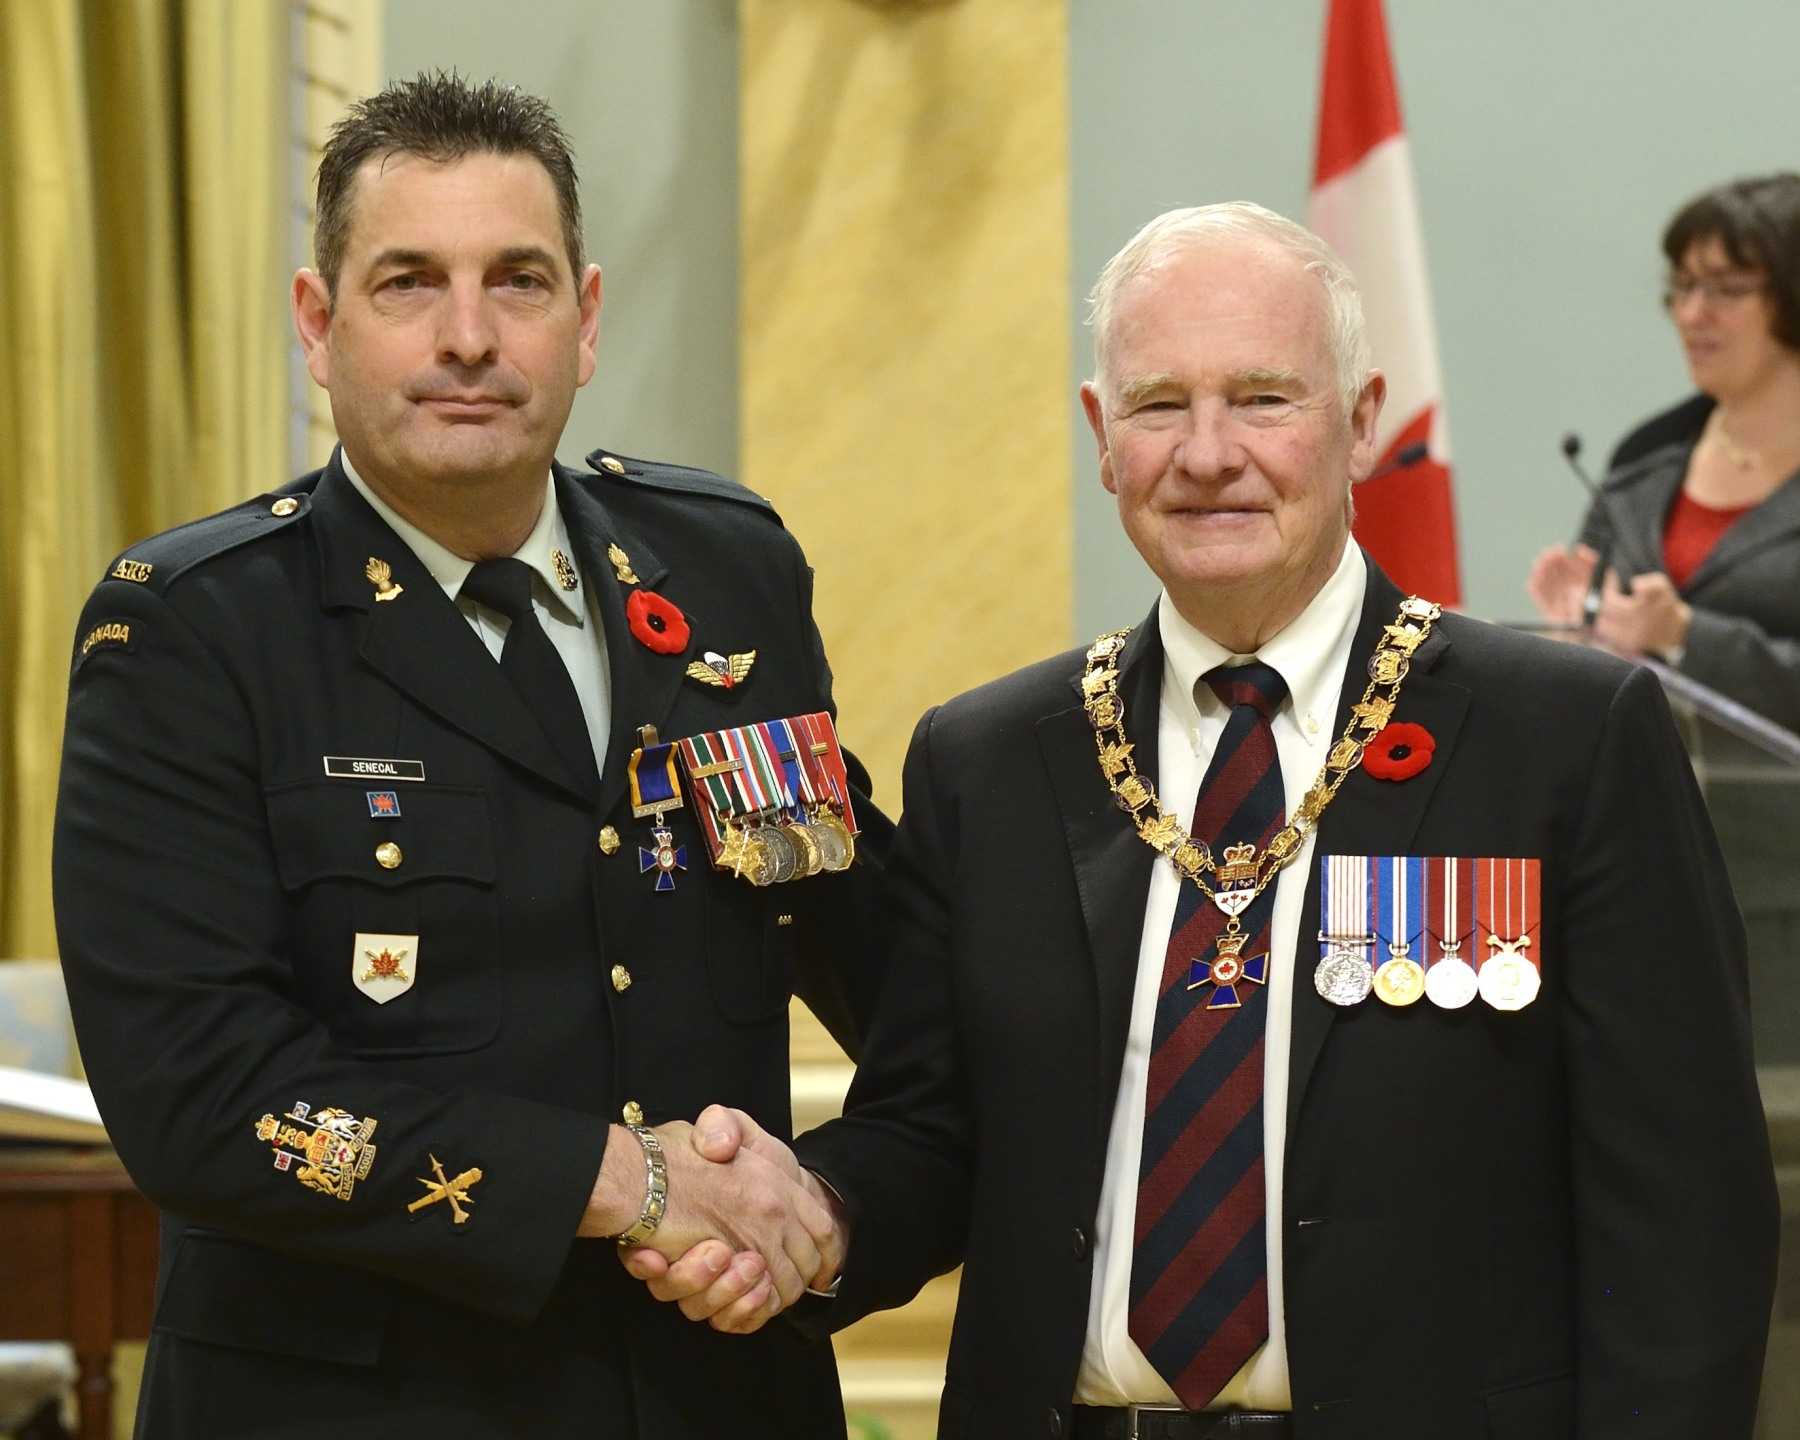 His Excellency presented the Order of Military Merit at the Member level (M.M.M.) to Chief Warrant Officer Jean-Claude Sénécal, M.M.M., C.D., 4th Air Defence Regiment, Royal Canadian Artillery